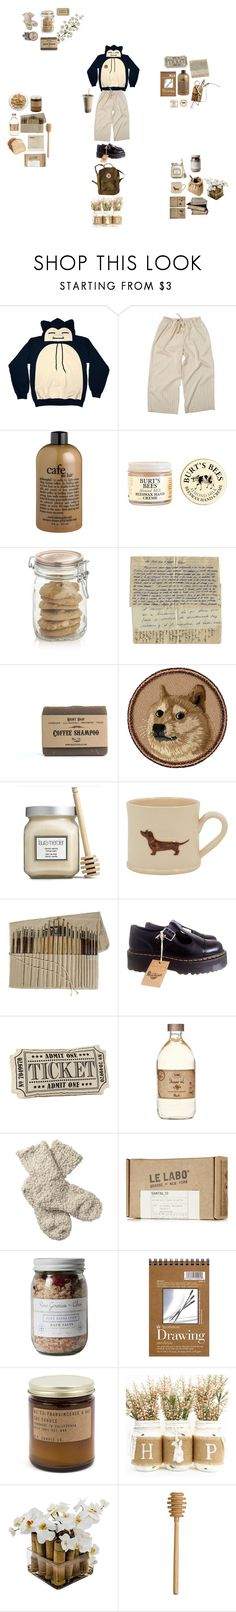 """""""the night of the sun"""" by jayda-xx ❤ liked on Polyvore featuring philosophy, Burt's Bees, Crate and Barrel, Laura Mercier, The Good Home Co., Polaroid, Dr. Martens, Fat Face, Le Labo and Zoet Bathlatier"""